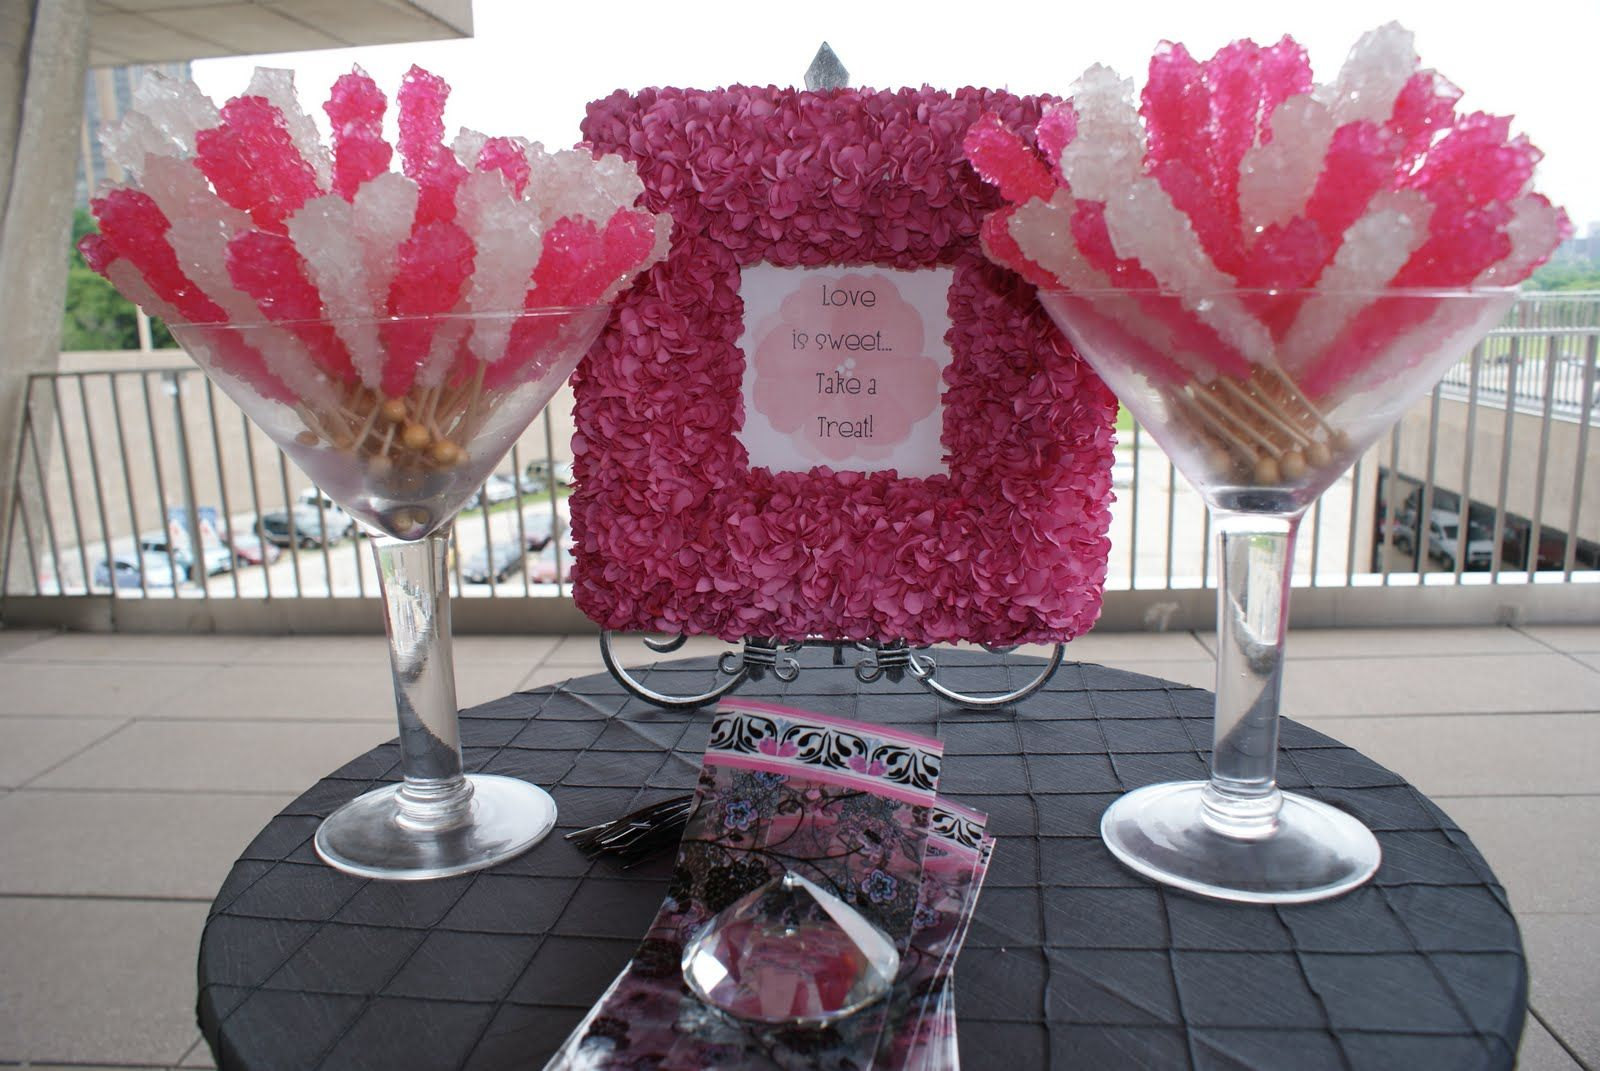 Rockcandythemedwedding Rock Candy As Favorsassic And